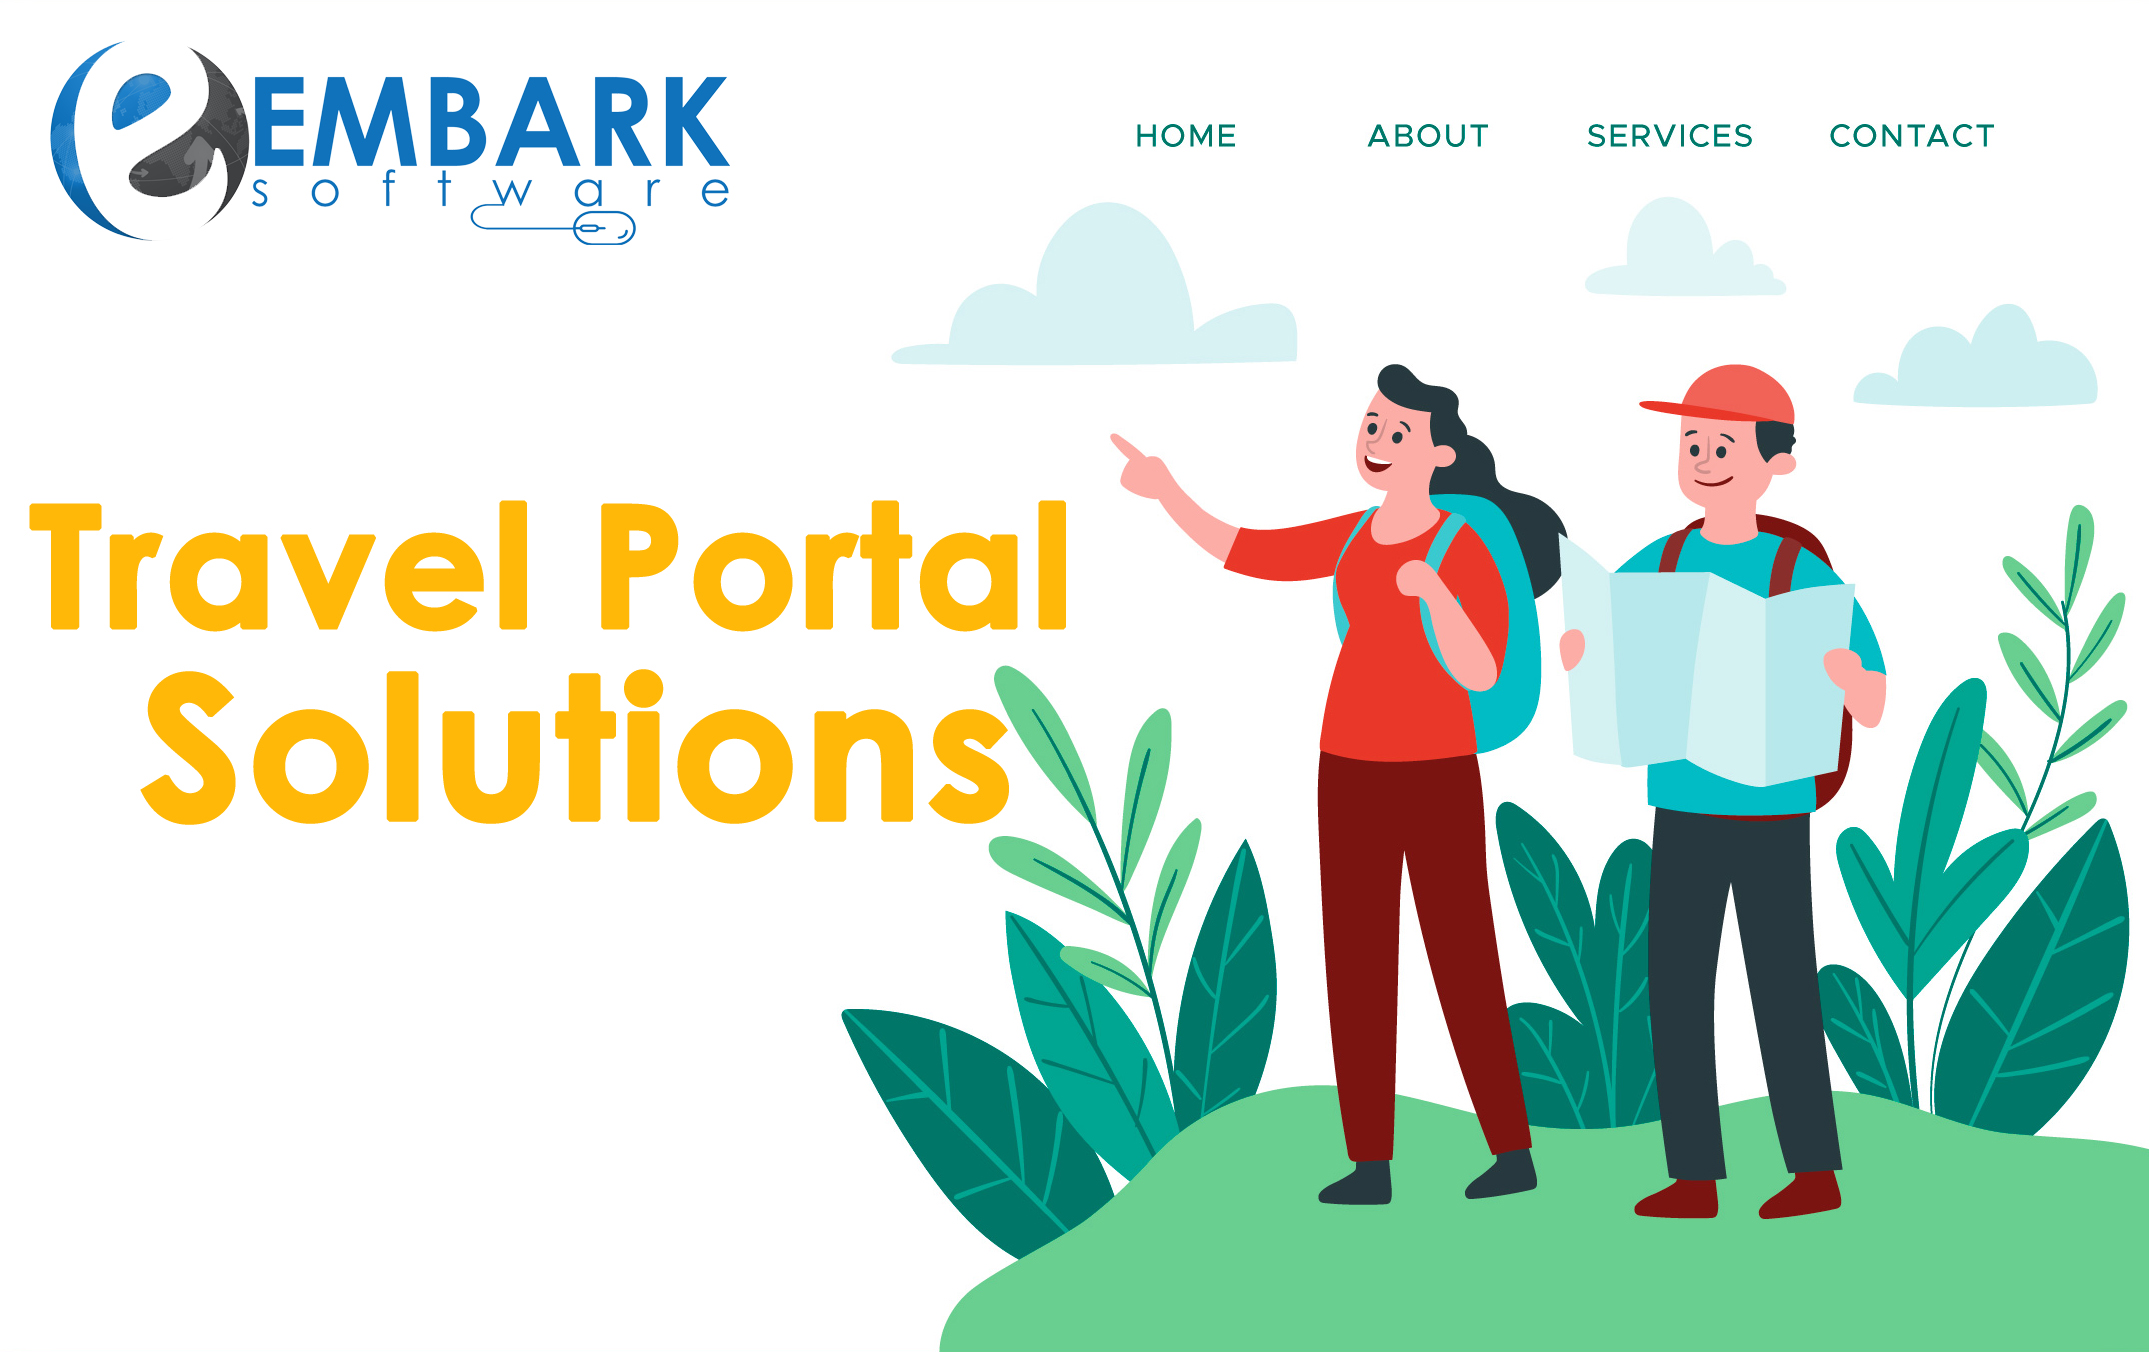 Travel Portal Solutions Work As A Magic Wand in the Travel & Tourism Industry